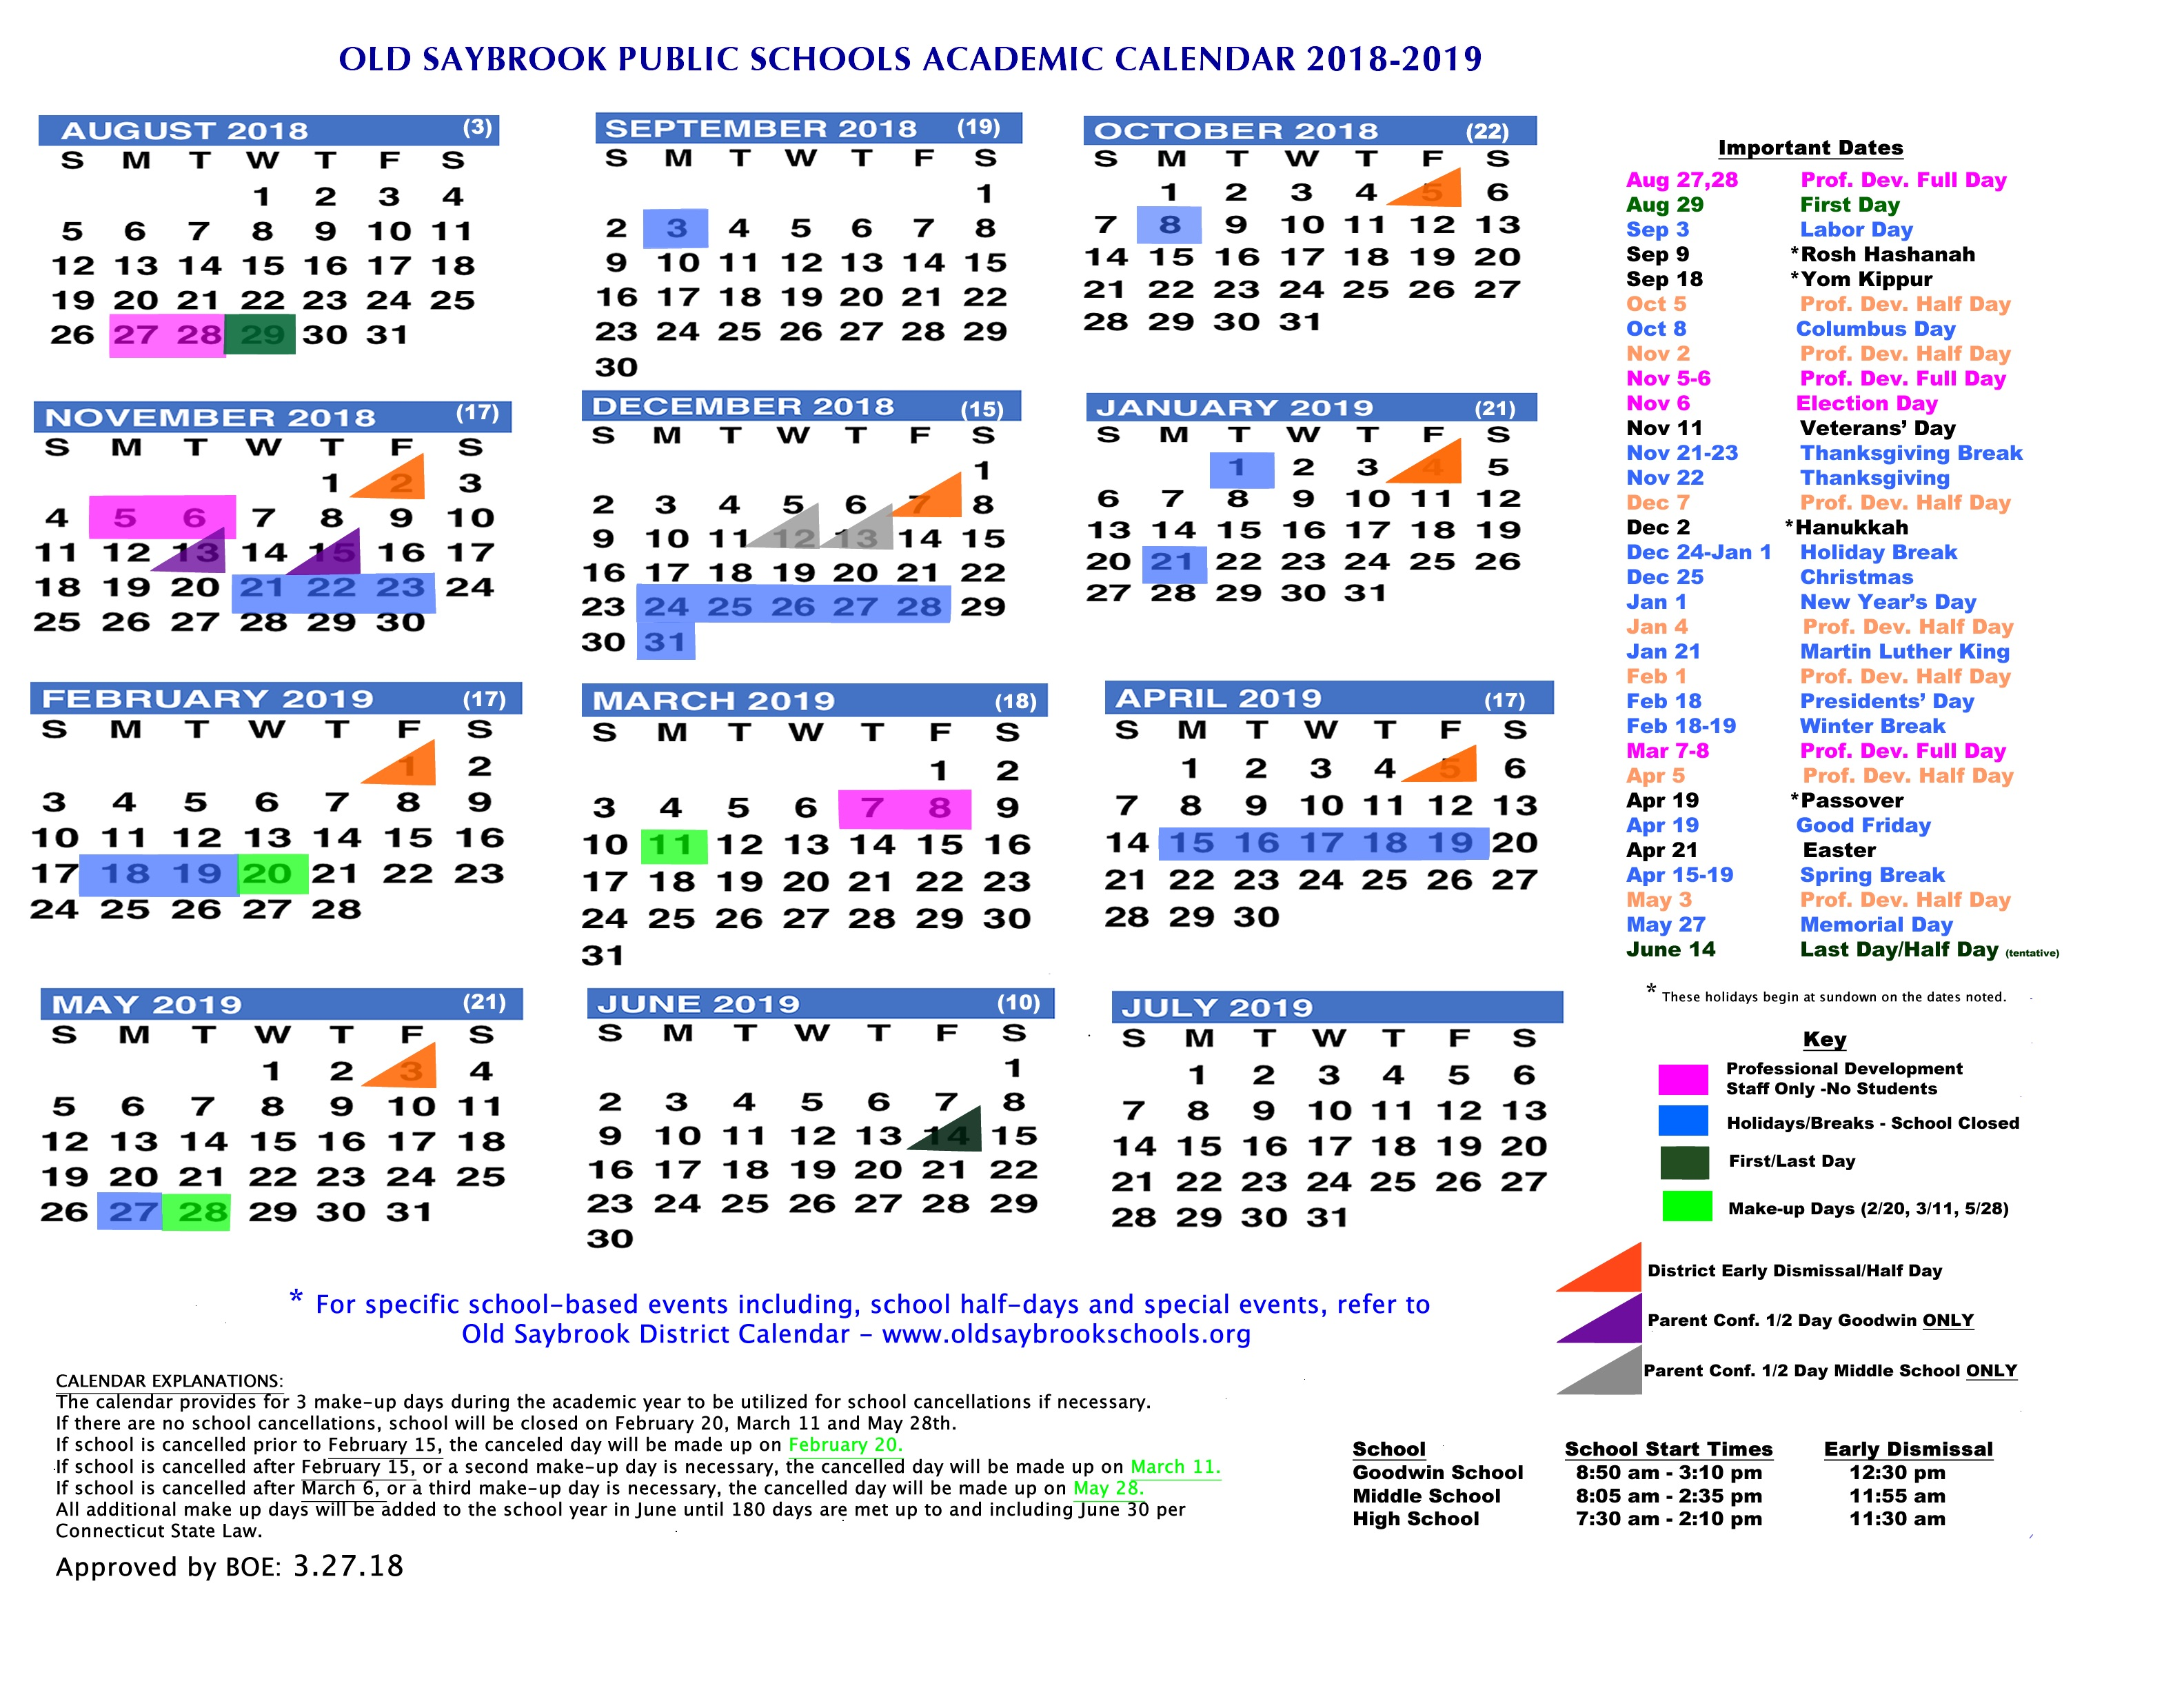 Academic Year Calendar 2019 With Old Saybrook Public Schools